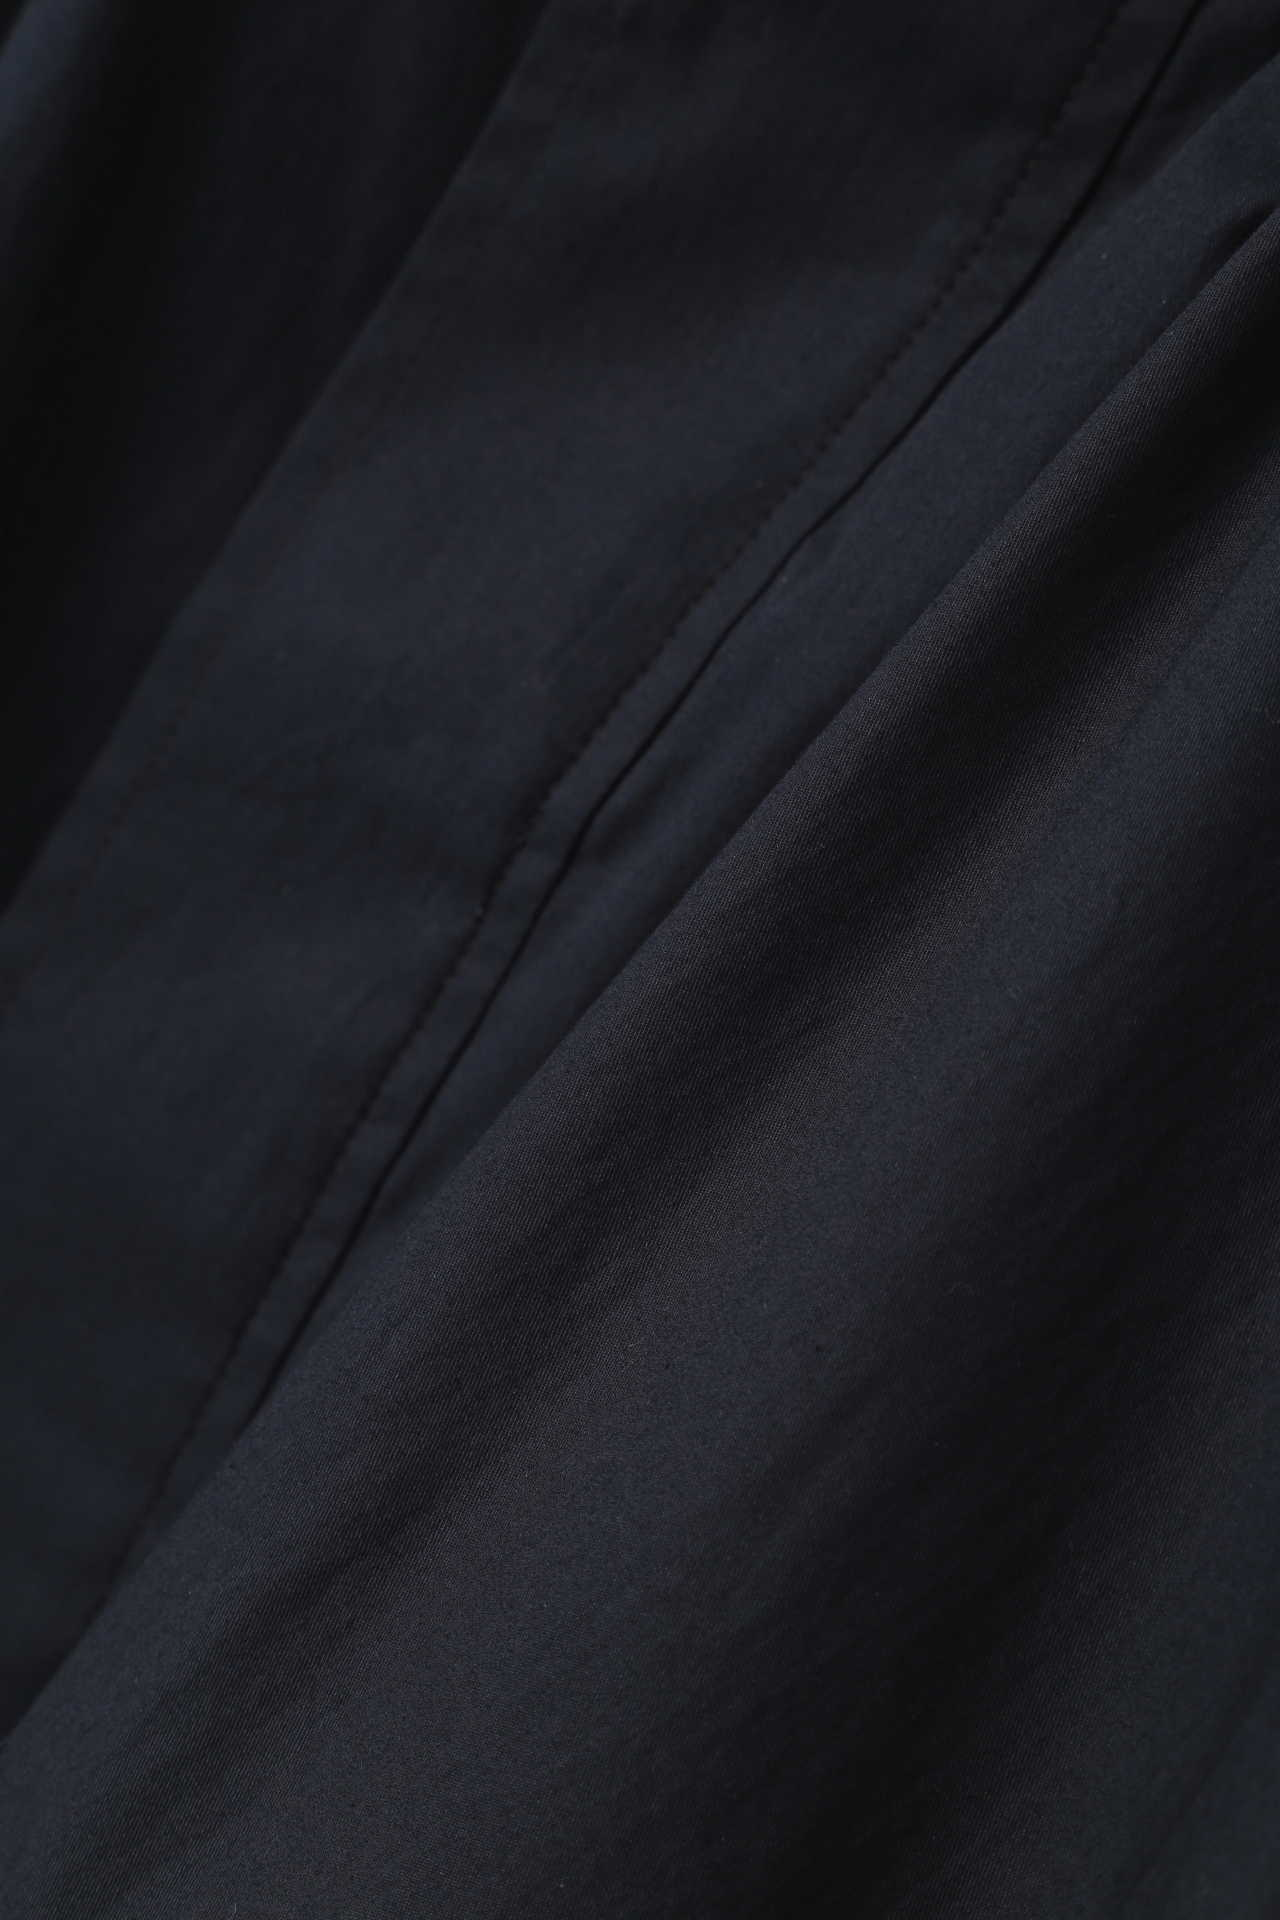 PROOFED FINE COTTON TWILL